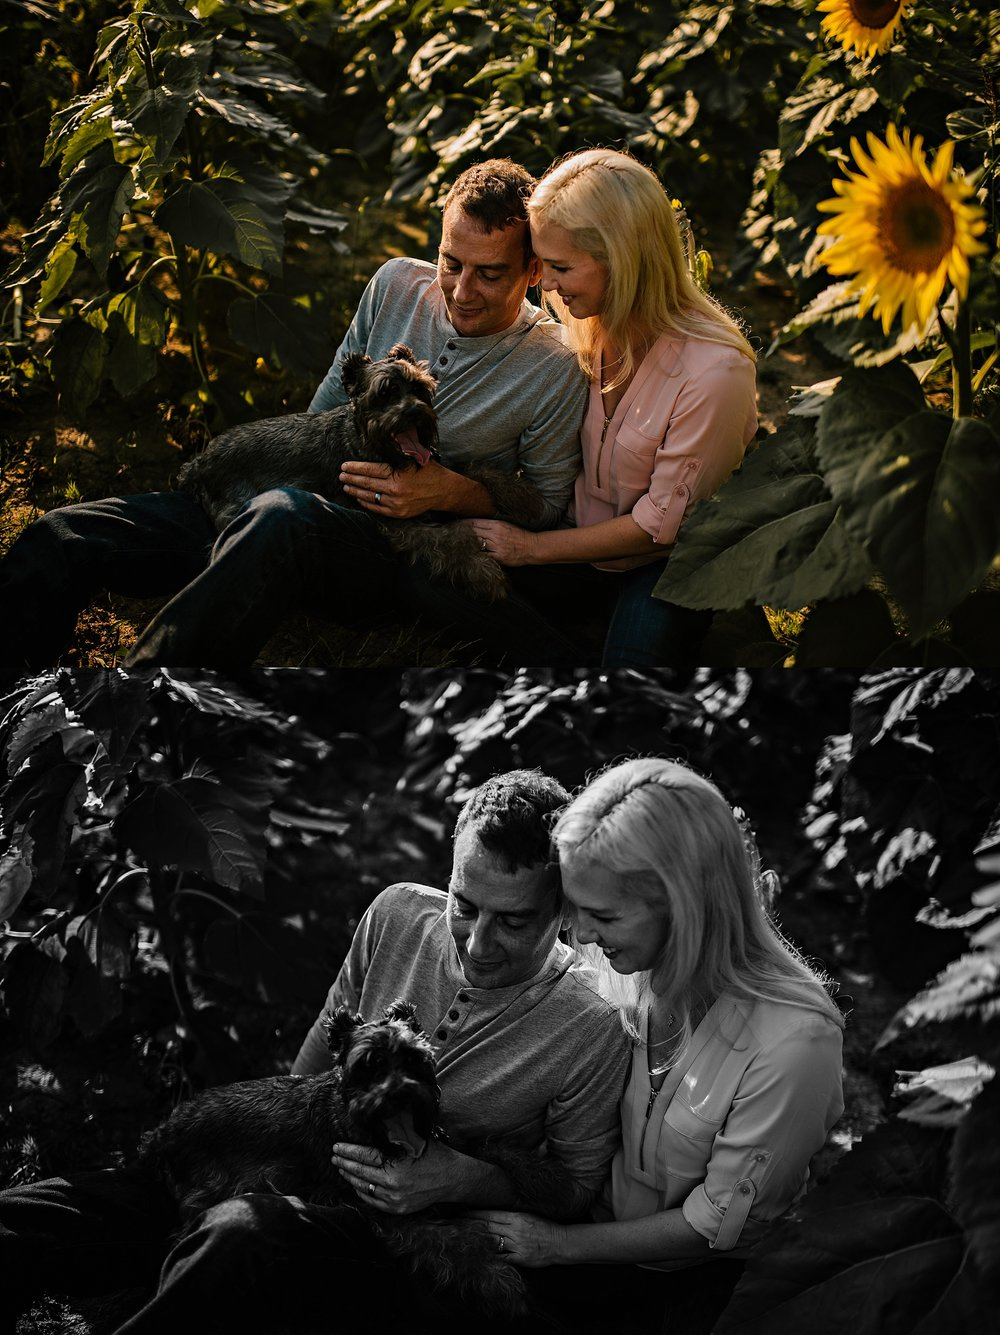 Lori-and-mike-akron-ohio-photographer-lauren-grayson-sunflower-field-session_0022.jpg